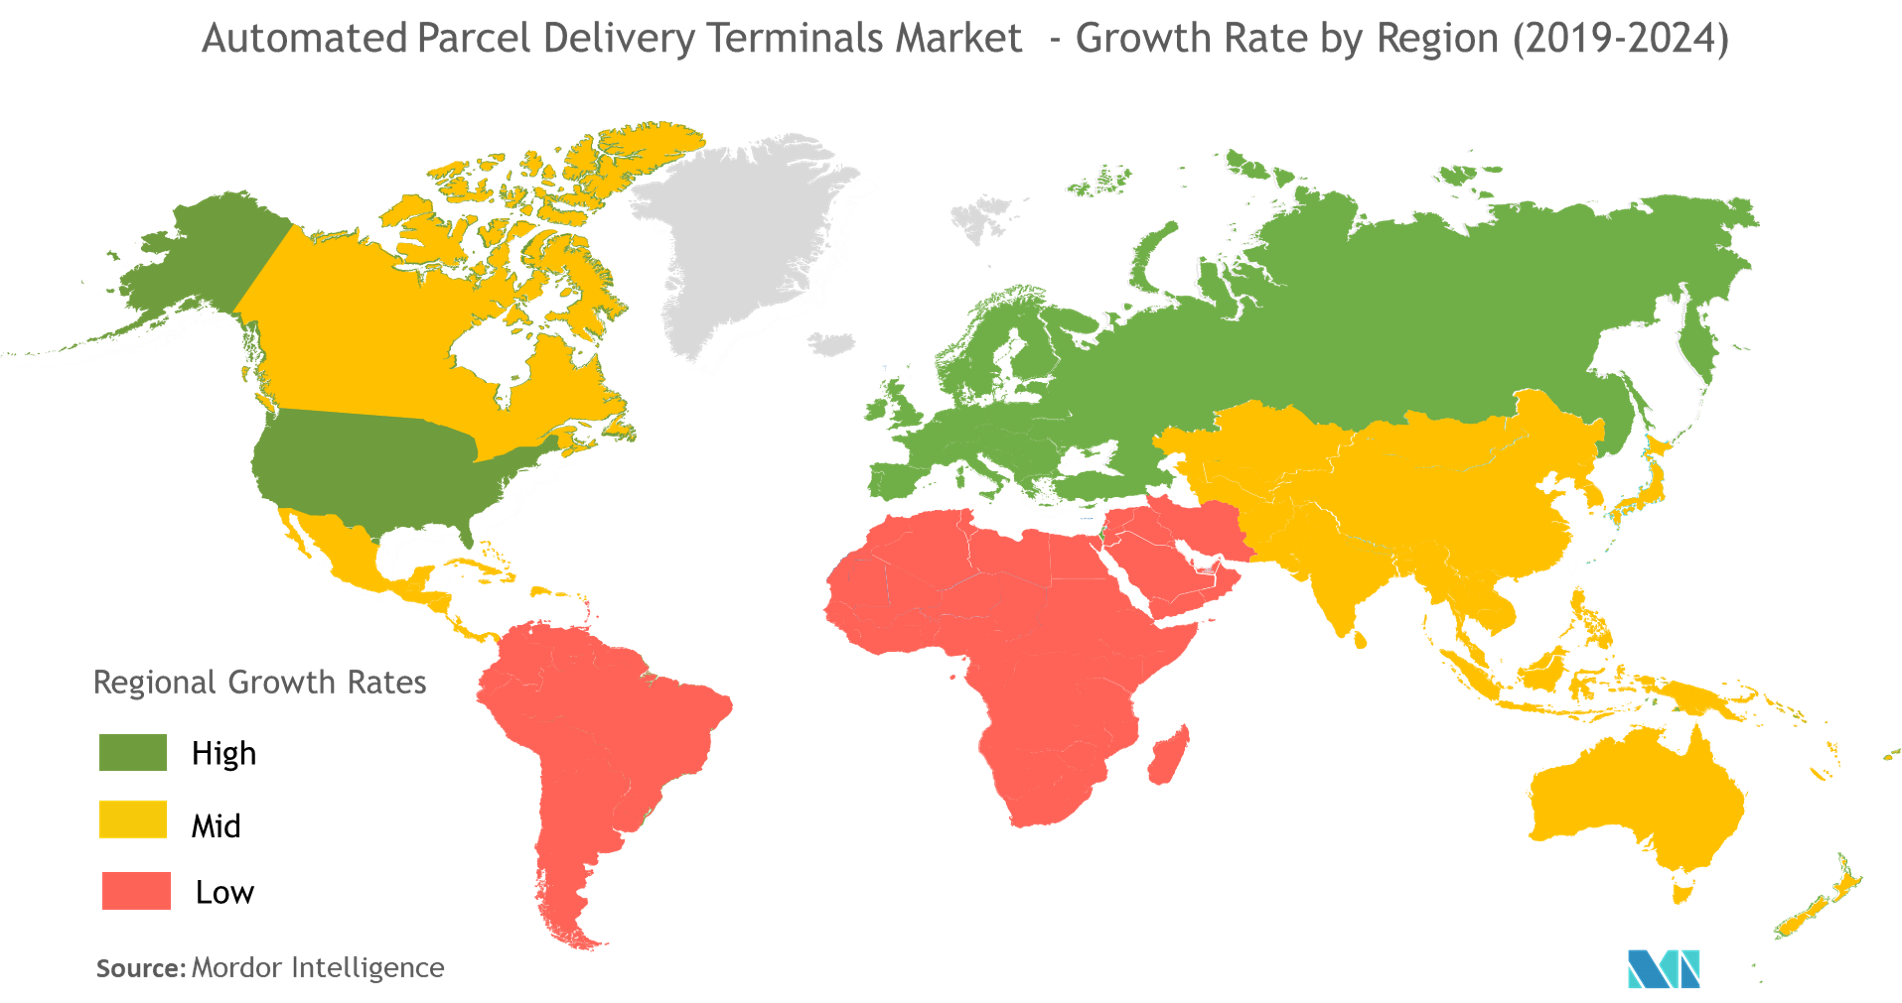 Automated Parcel Delivery Terminals Market Growth by Region